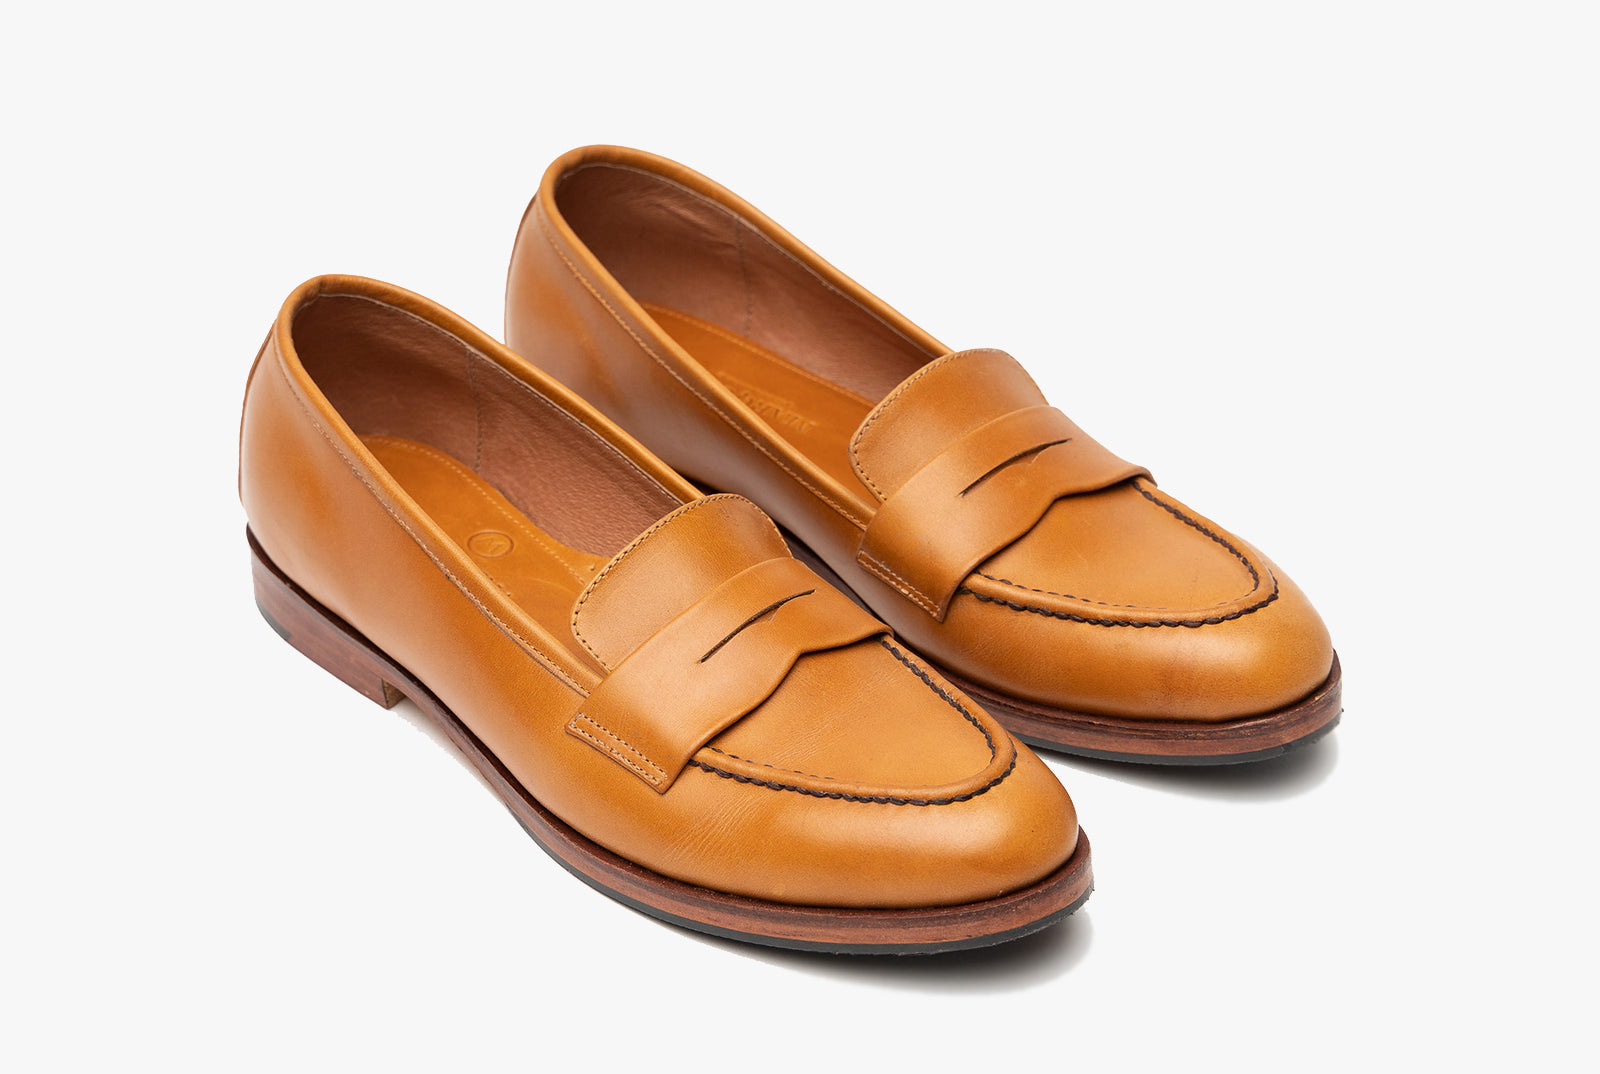 The Bonnie Penny Loafers - Cognac Tan - Marquina Shoemaker